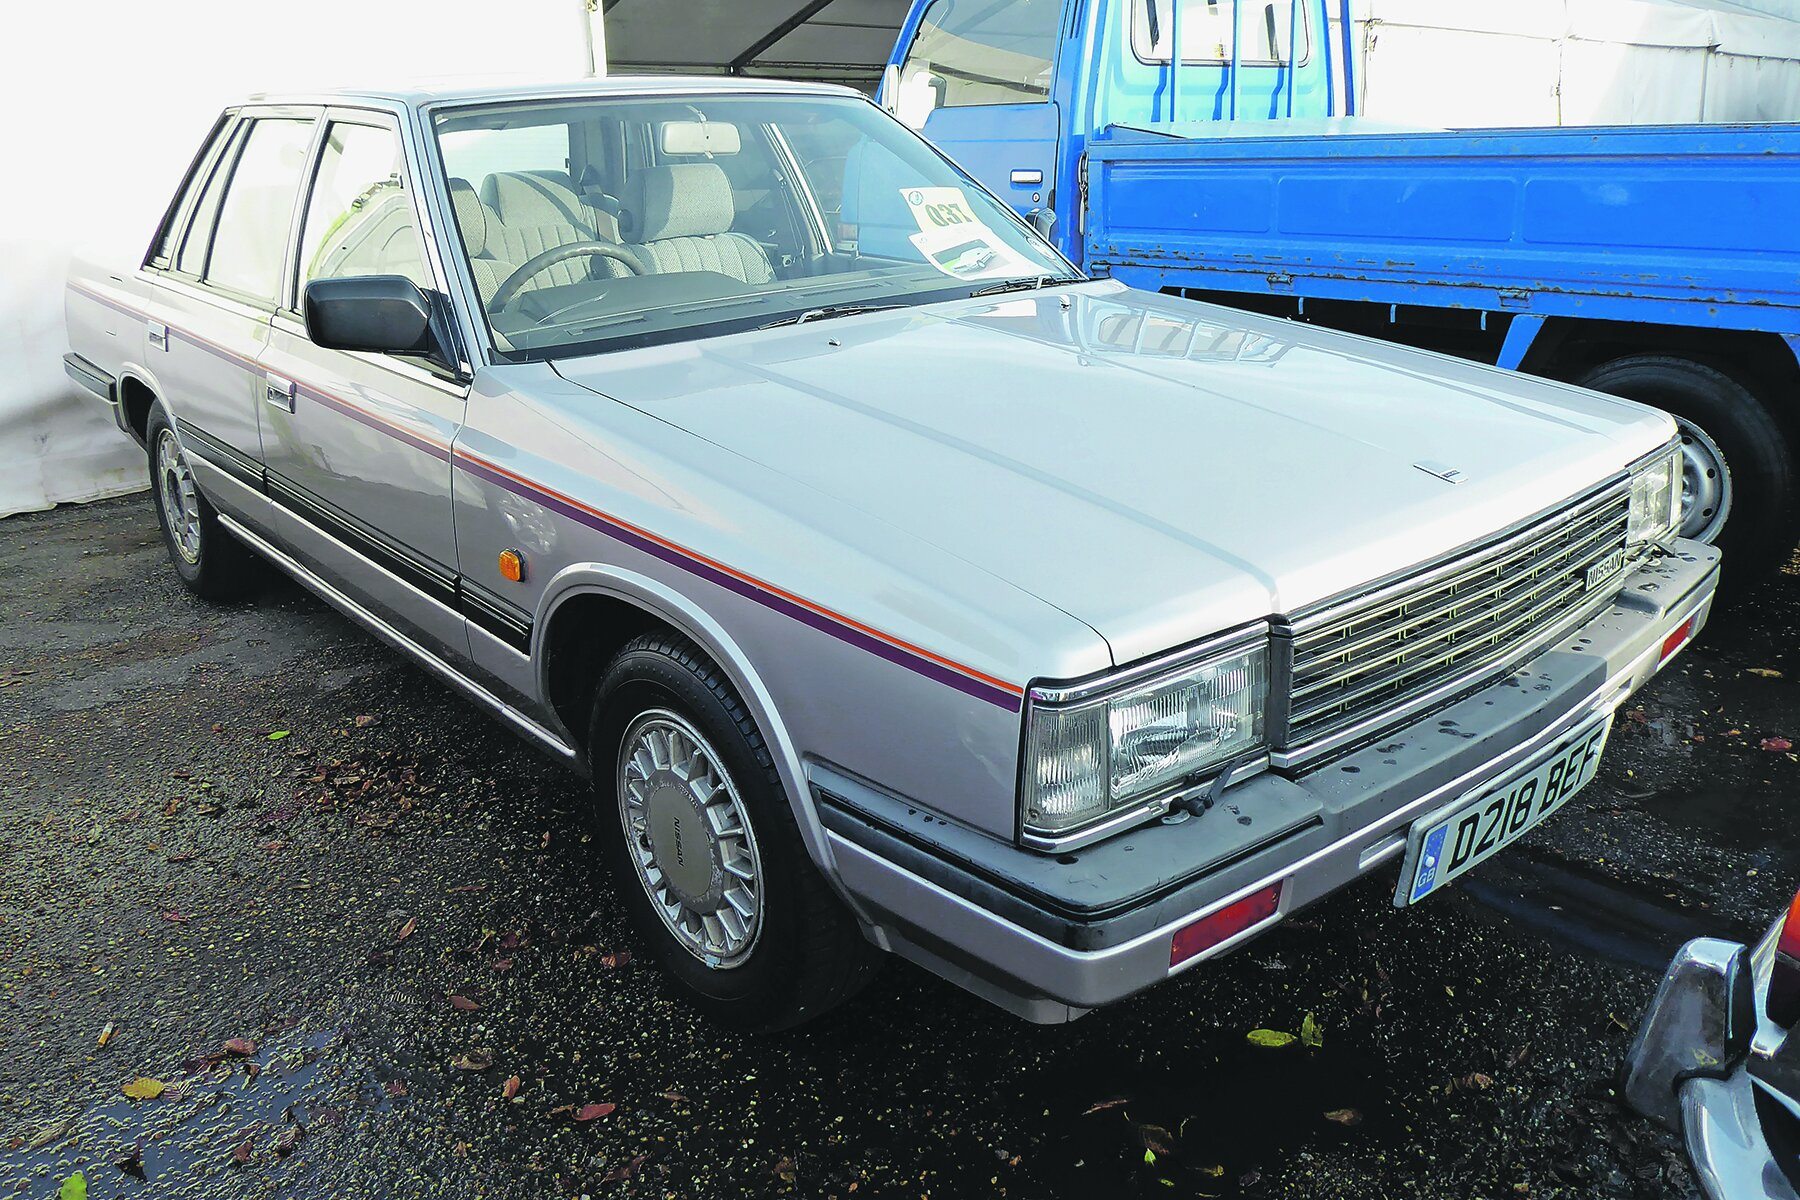 nissan laurel 1987 well bought at auction classic cars for sale nissan laurel 1987 well bought at